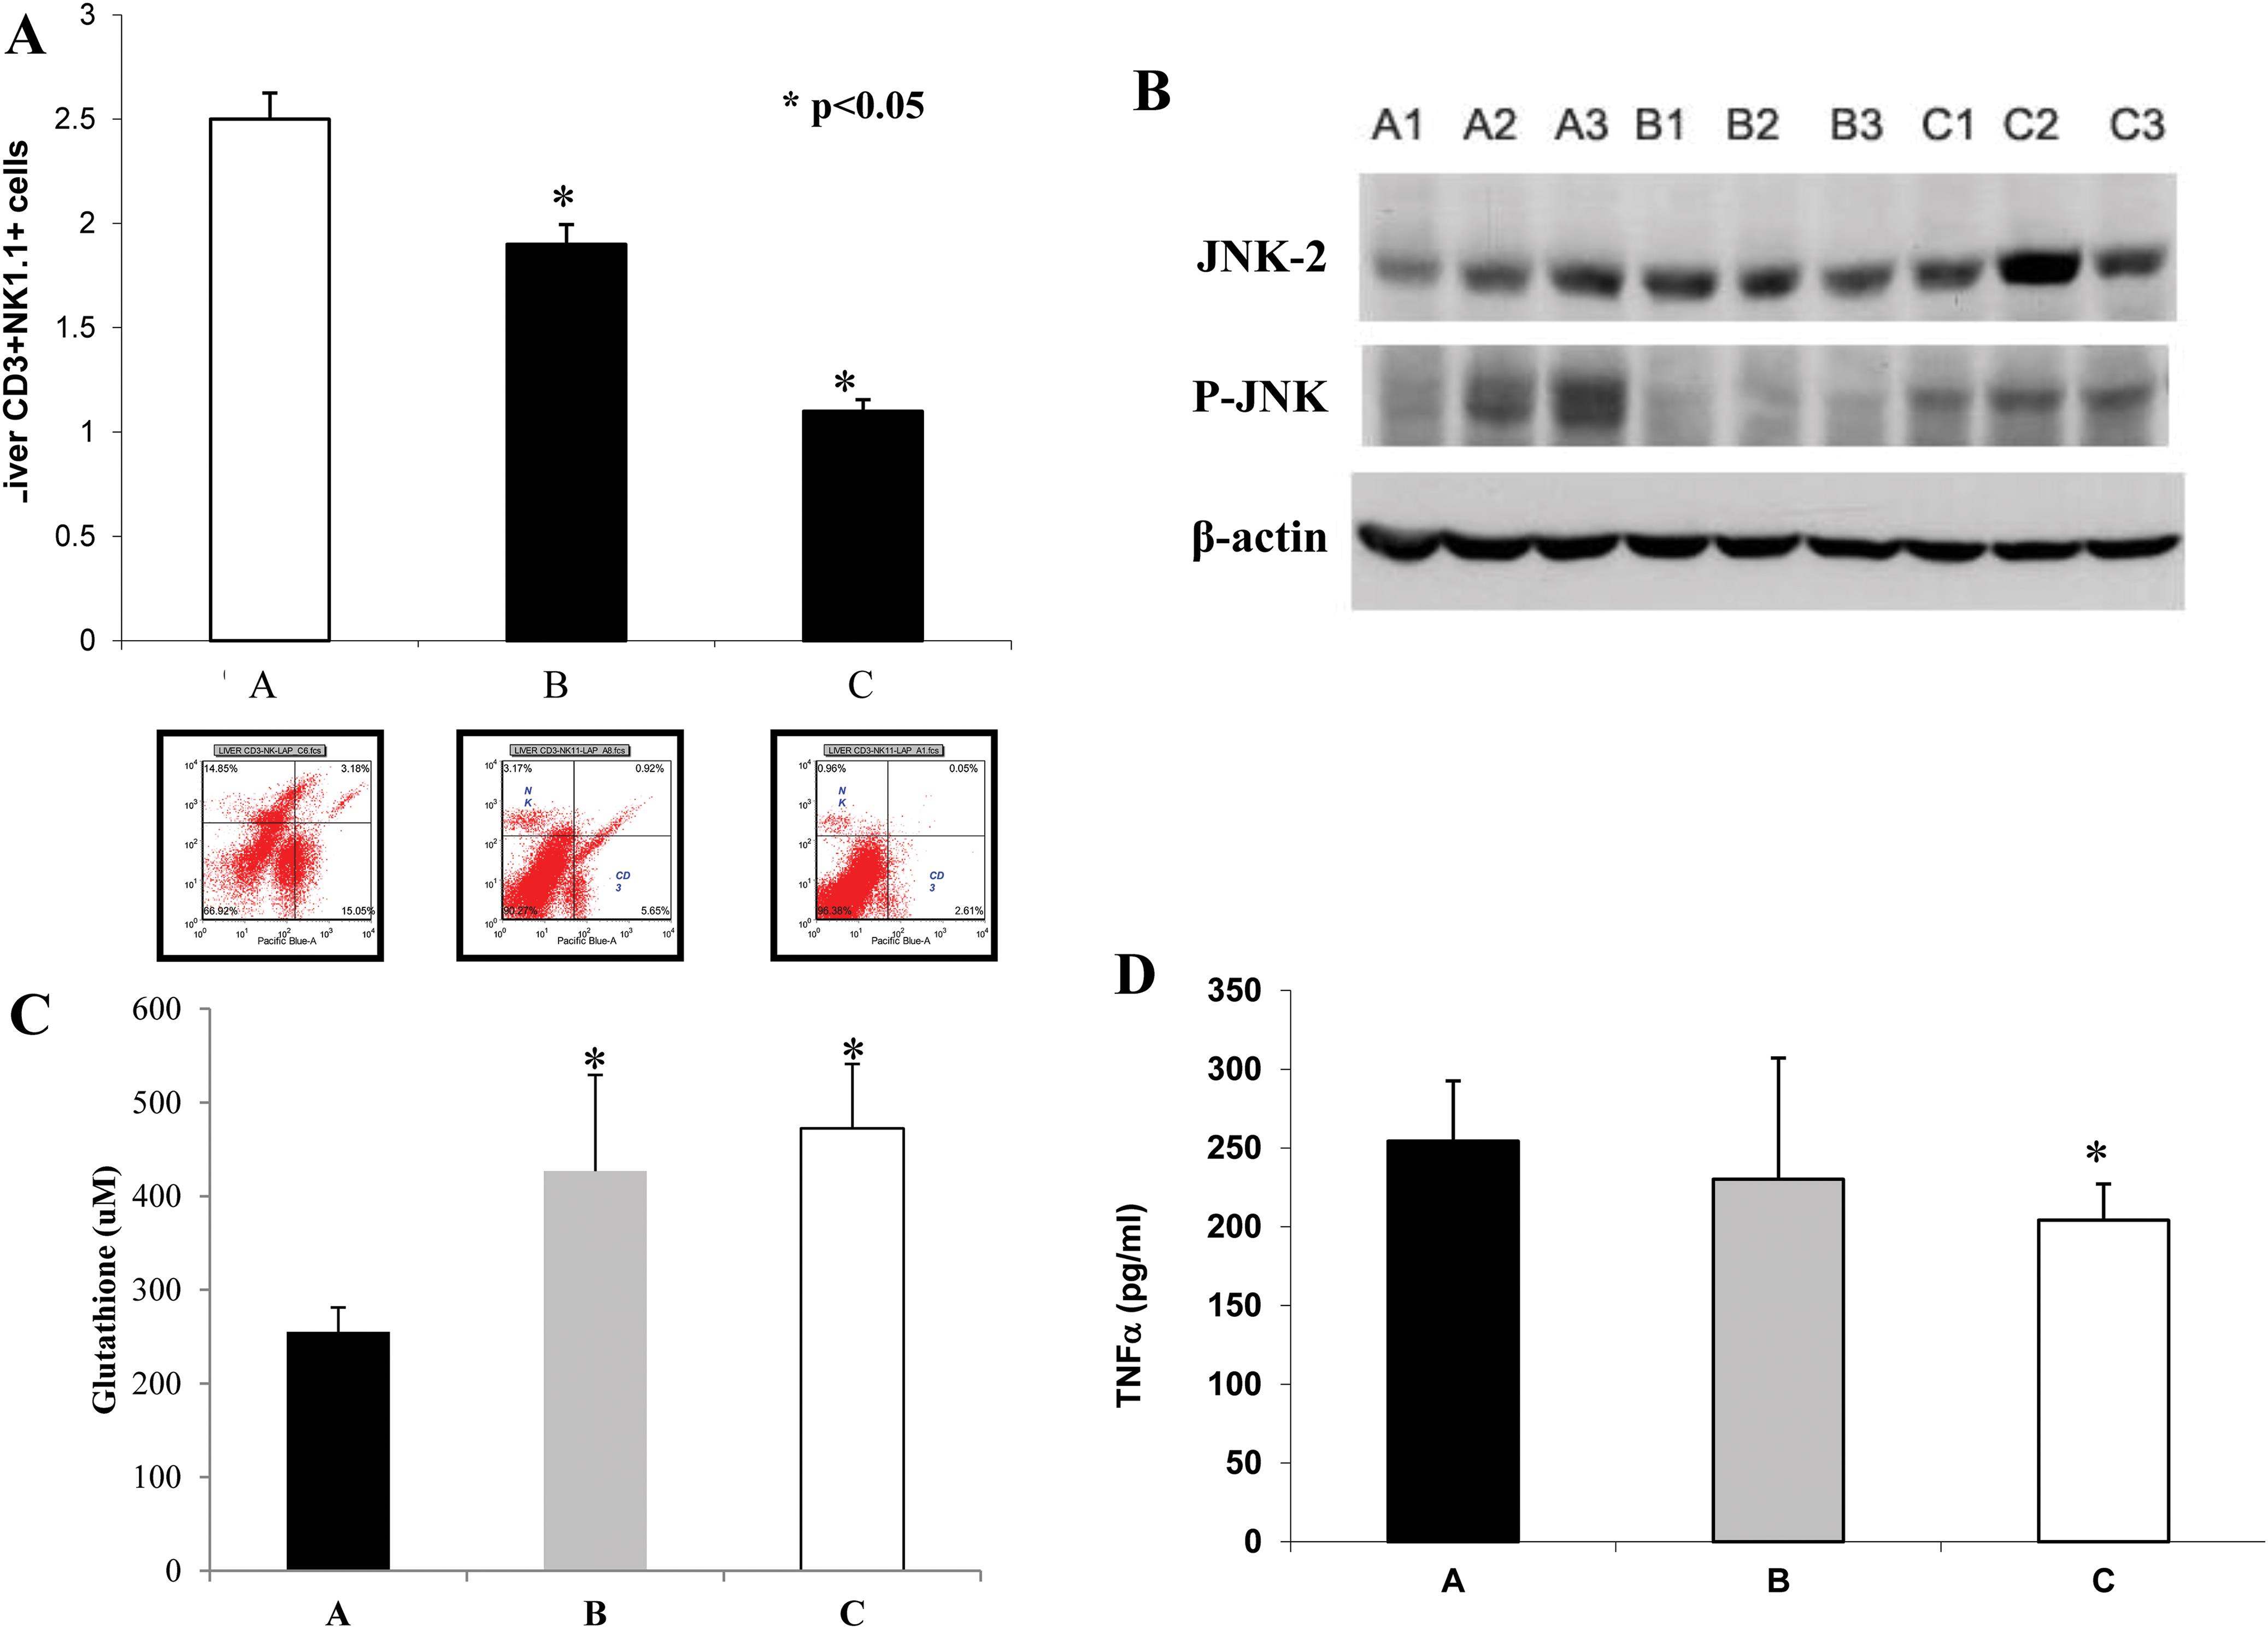 Effects on NKT, JNK expression, glutathione and TNF-α.